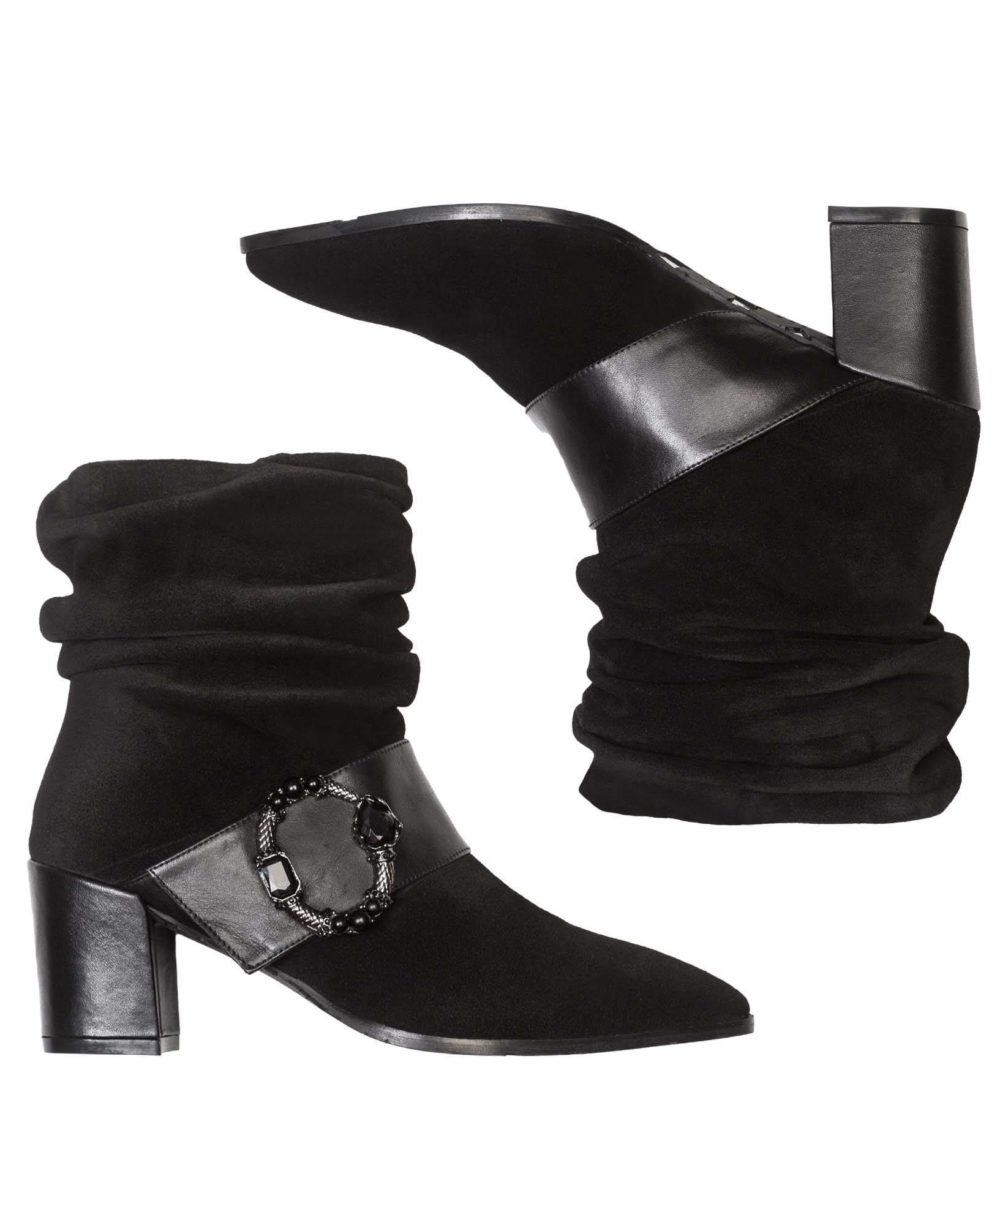 Leather ankle boots Paco Gil - P-3841 Black Velour-Bravo C